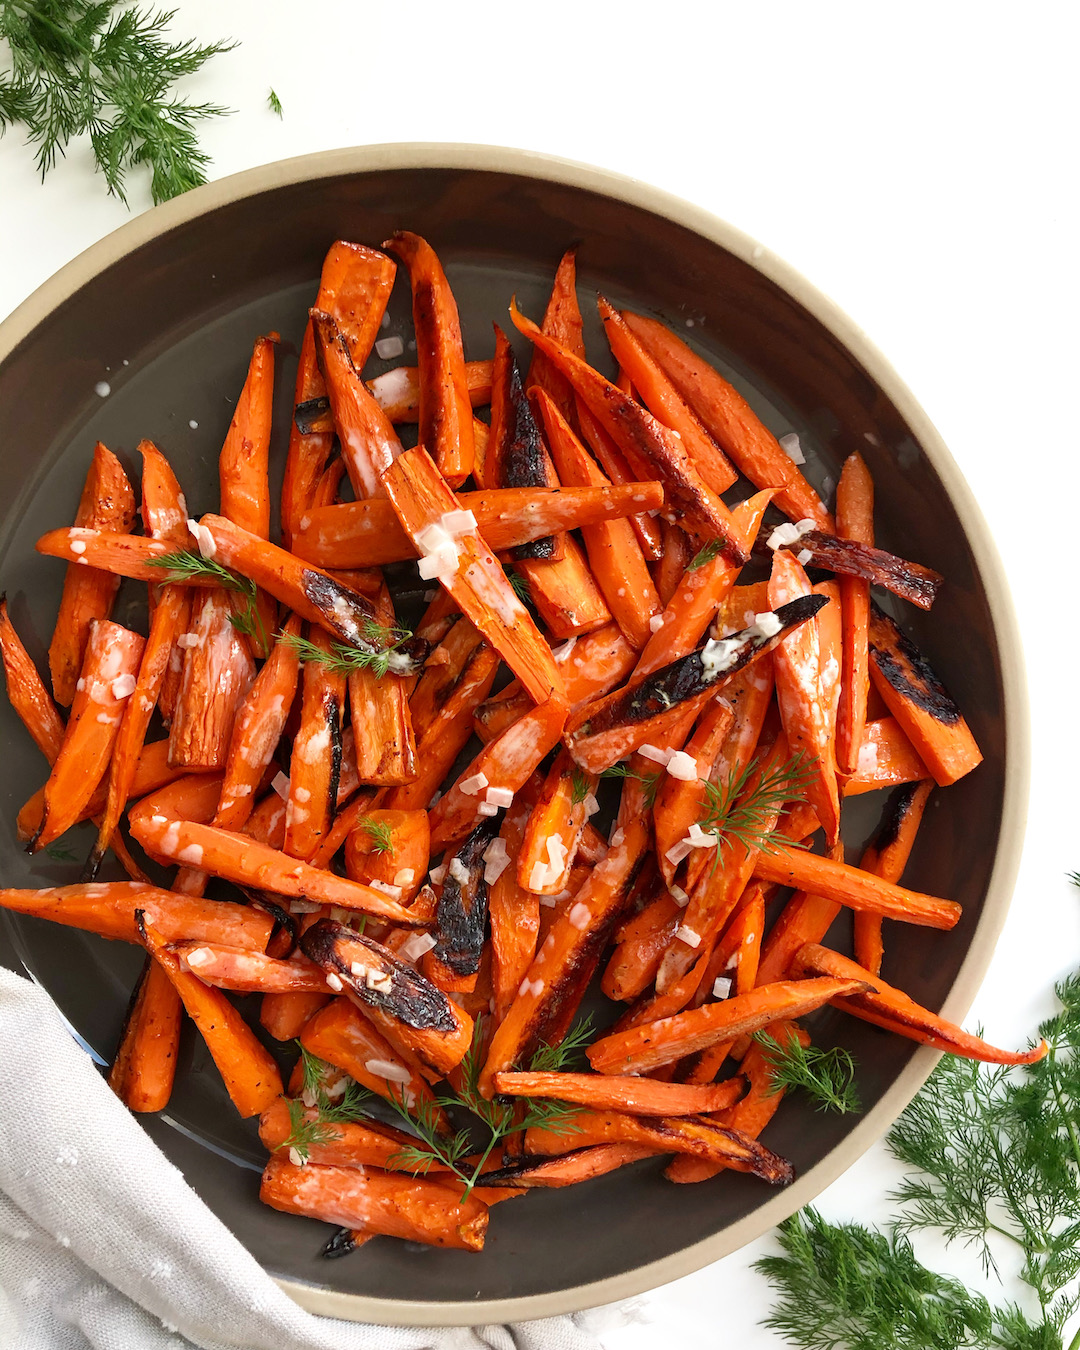 roasted carrots on a platter